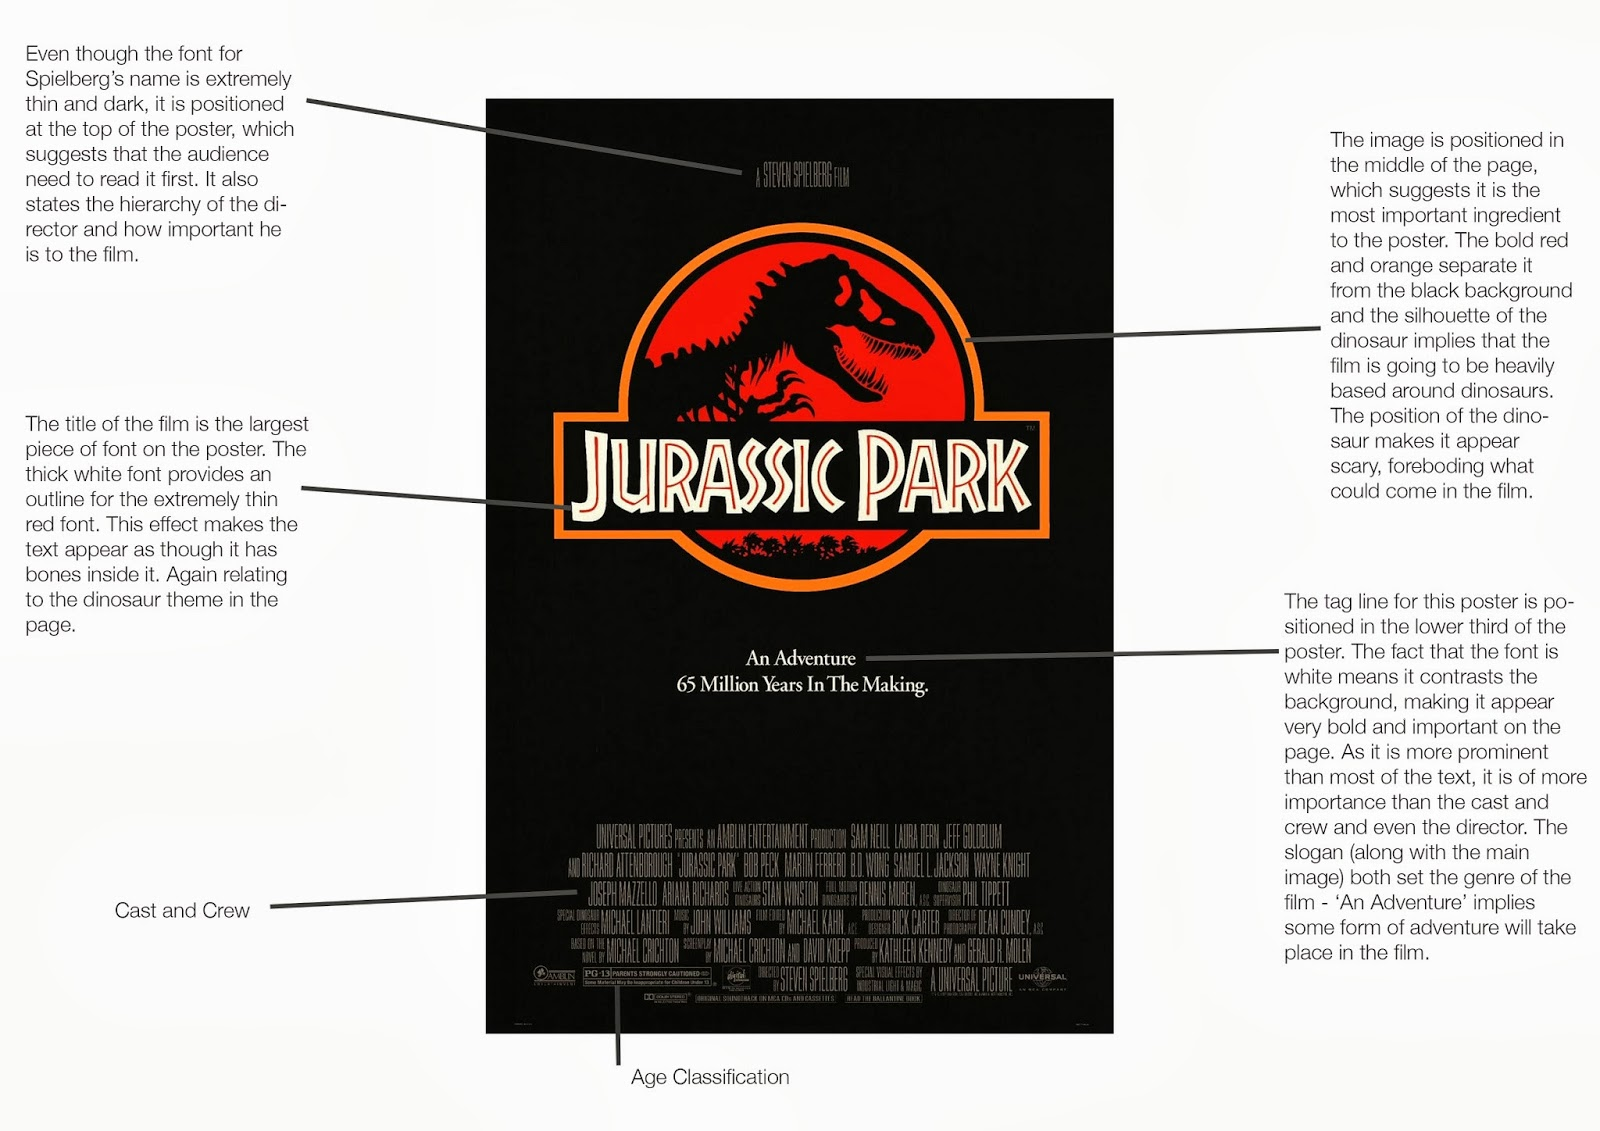 jurassic park analysis Jurassic park might be the definitive example of a classic movie it has shaped the modern movie as we know it today, and when dissecting it, i focused on.